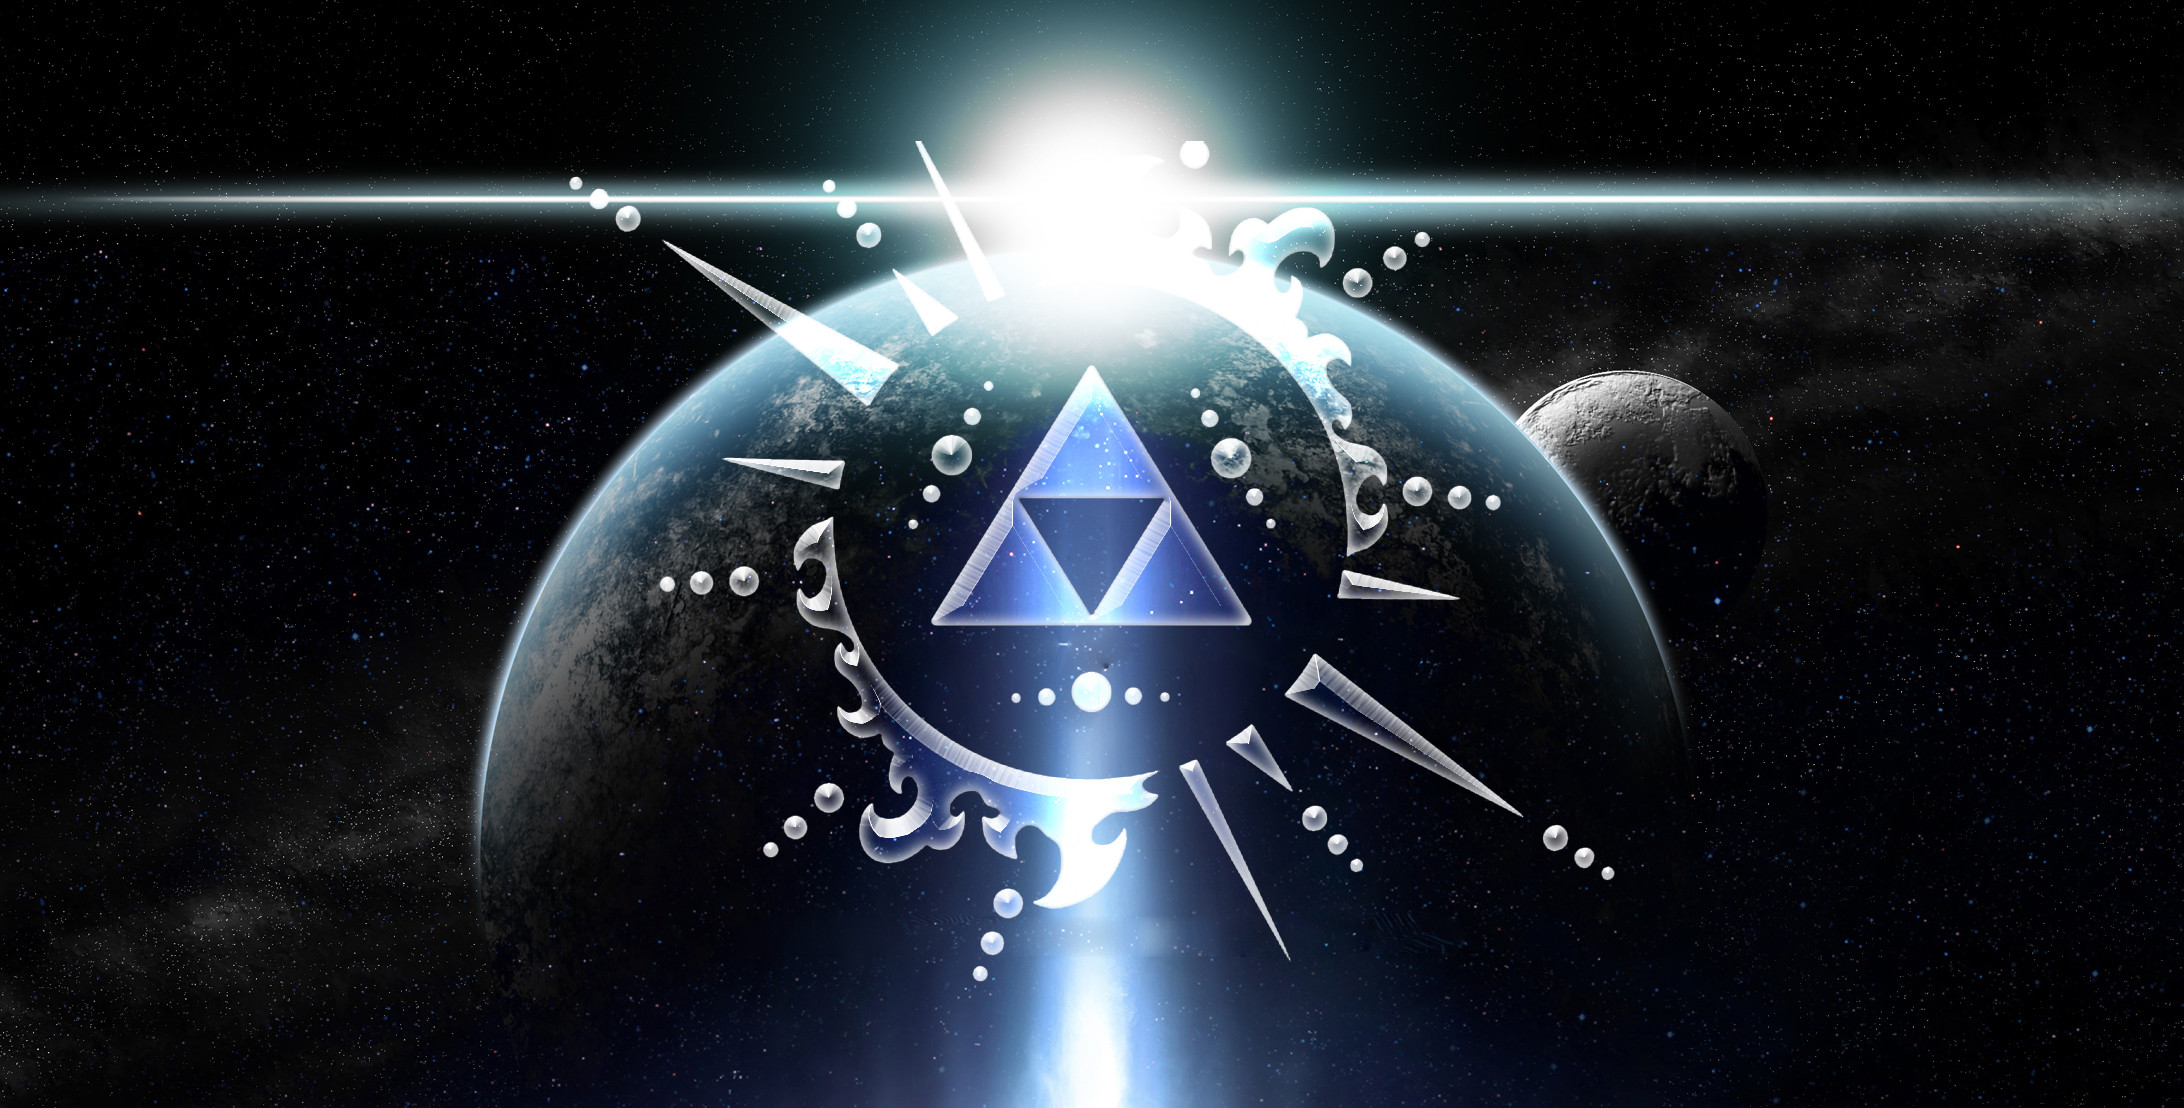 Zelda Triforce Wallpaper Wallpapertag